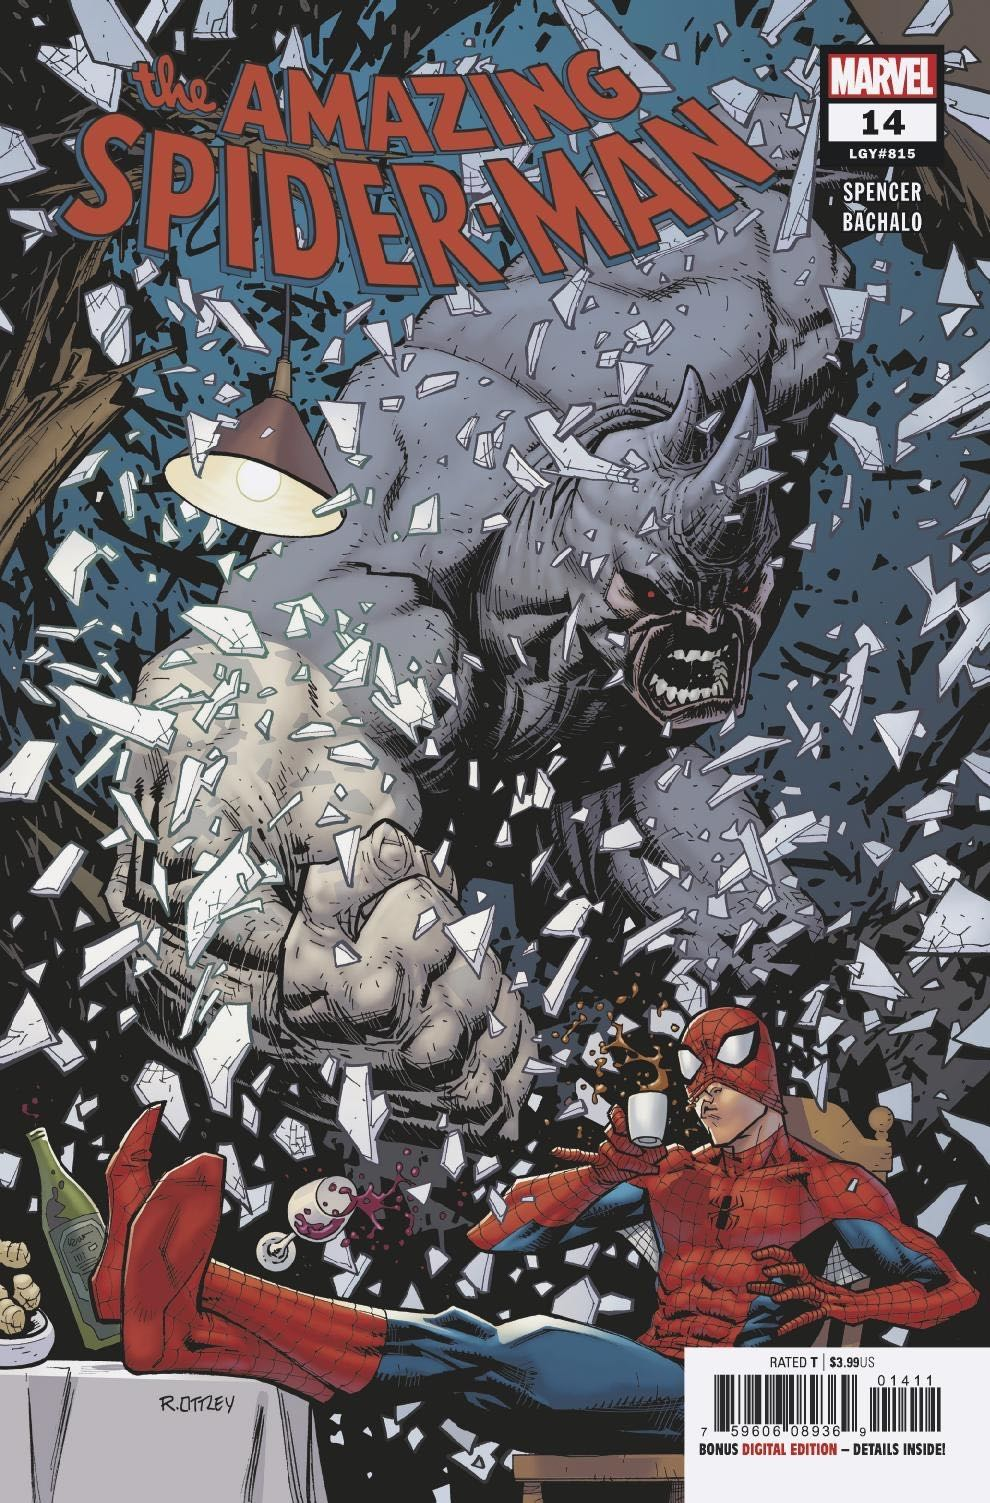 Marvel Preview: Amazing Spider-Man #14